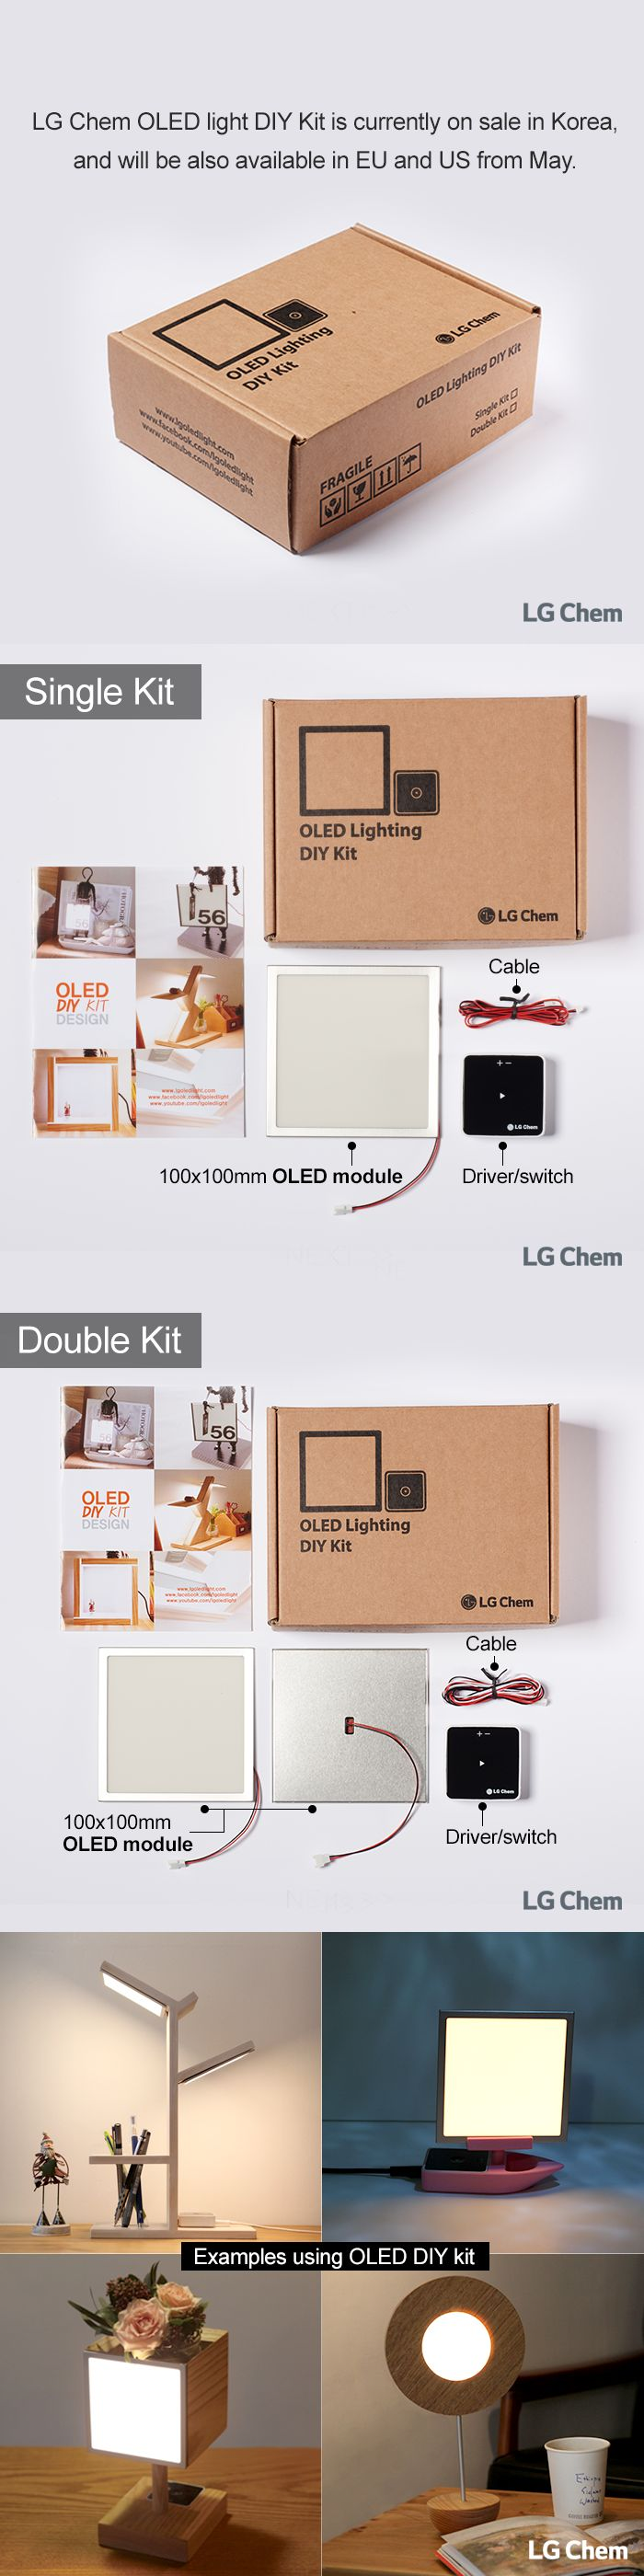 We introduce LG Chem OLED DIY Kit, which is currently available through Korean online market for sale. Experience OLEDs at home by designing your own lighting. It will also be available in EU and US from May. LG 화학 OLED 조명 DIY 키트를 소개합니다. 키트는 아래 링크를 통해 구매하실 수 있습니다!.